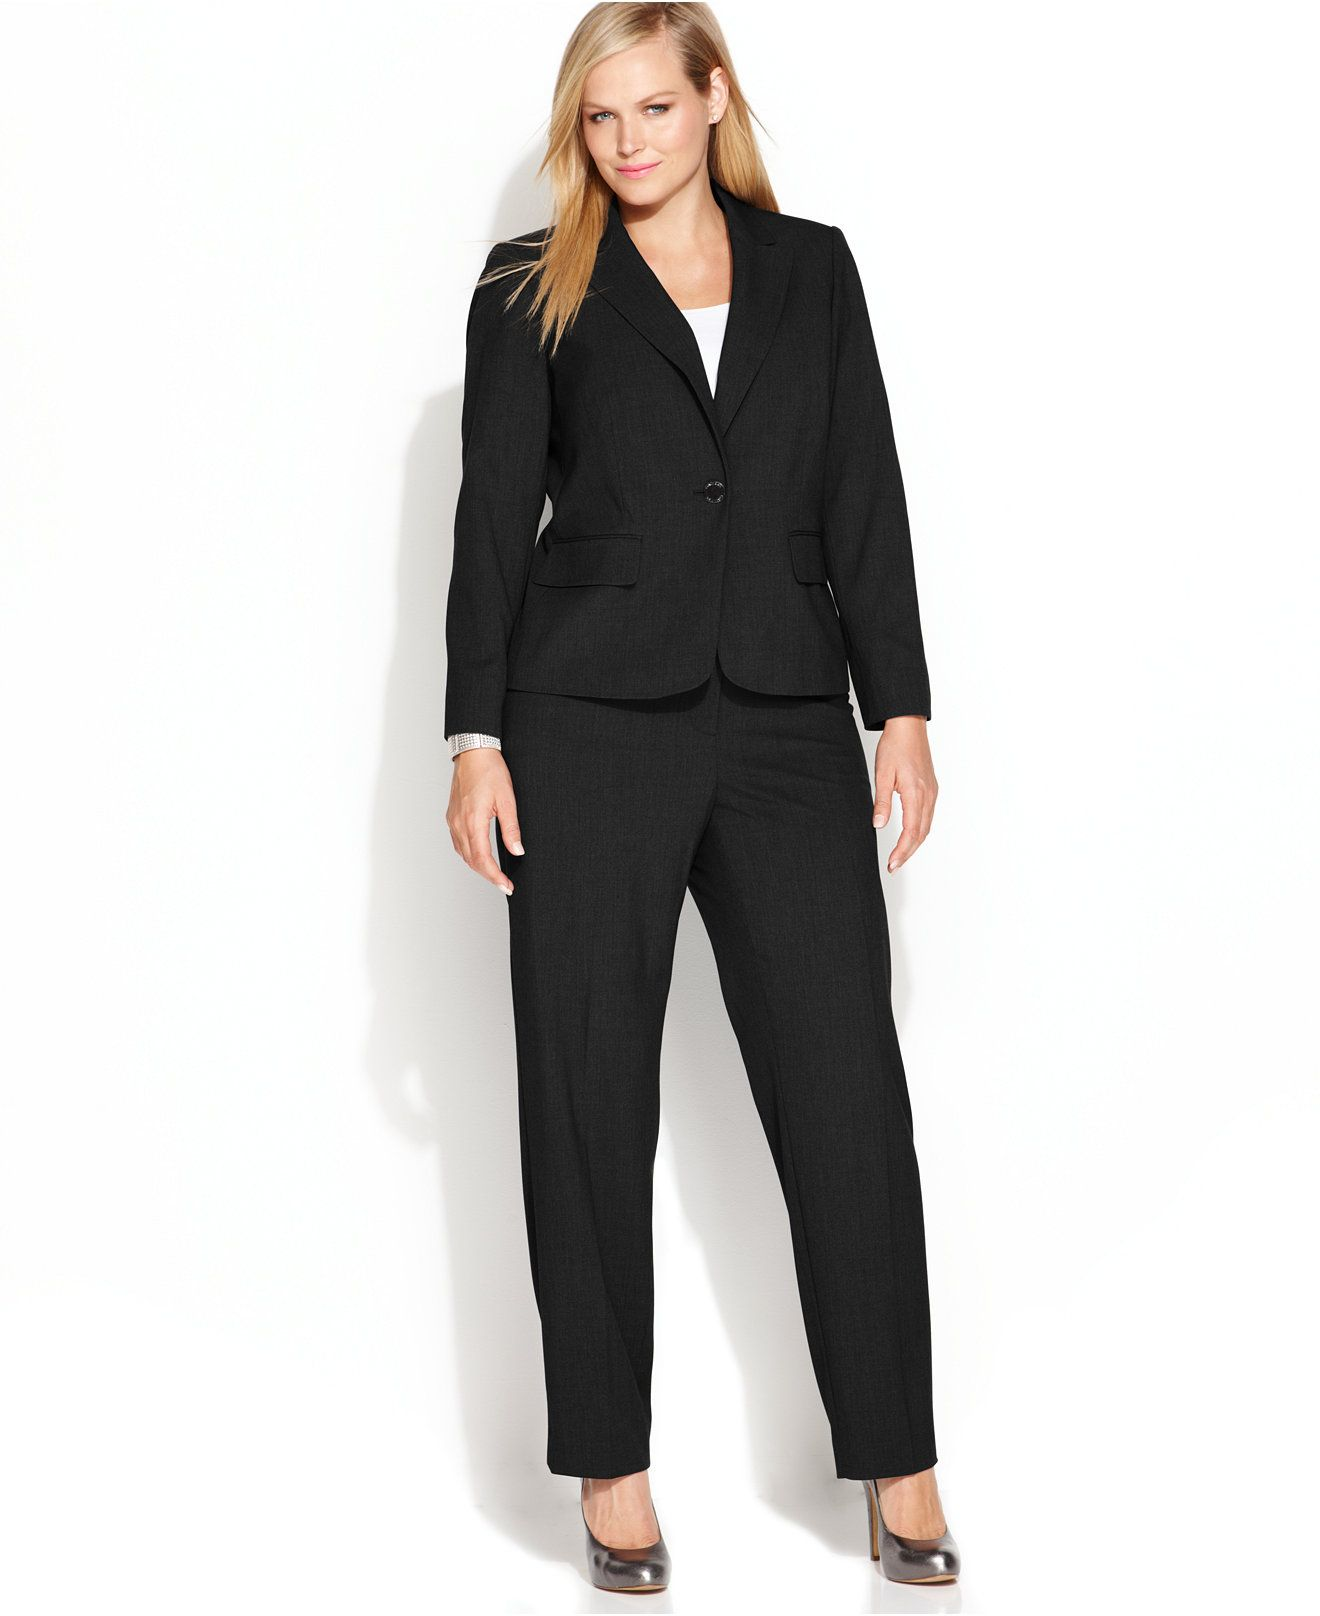 calvin klein plus size suit separates collection - suits & suit